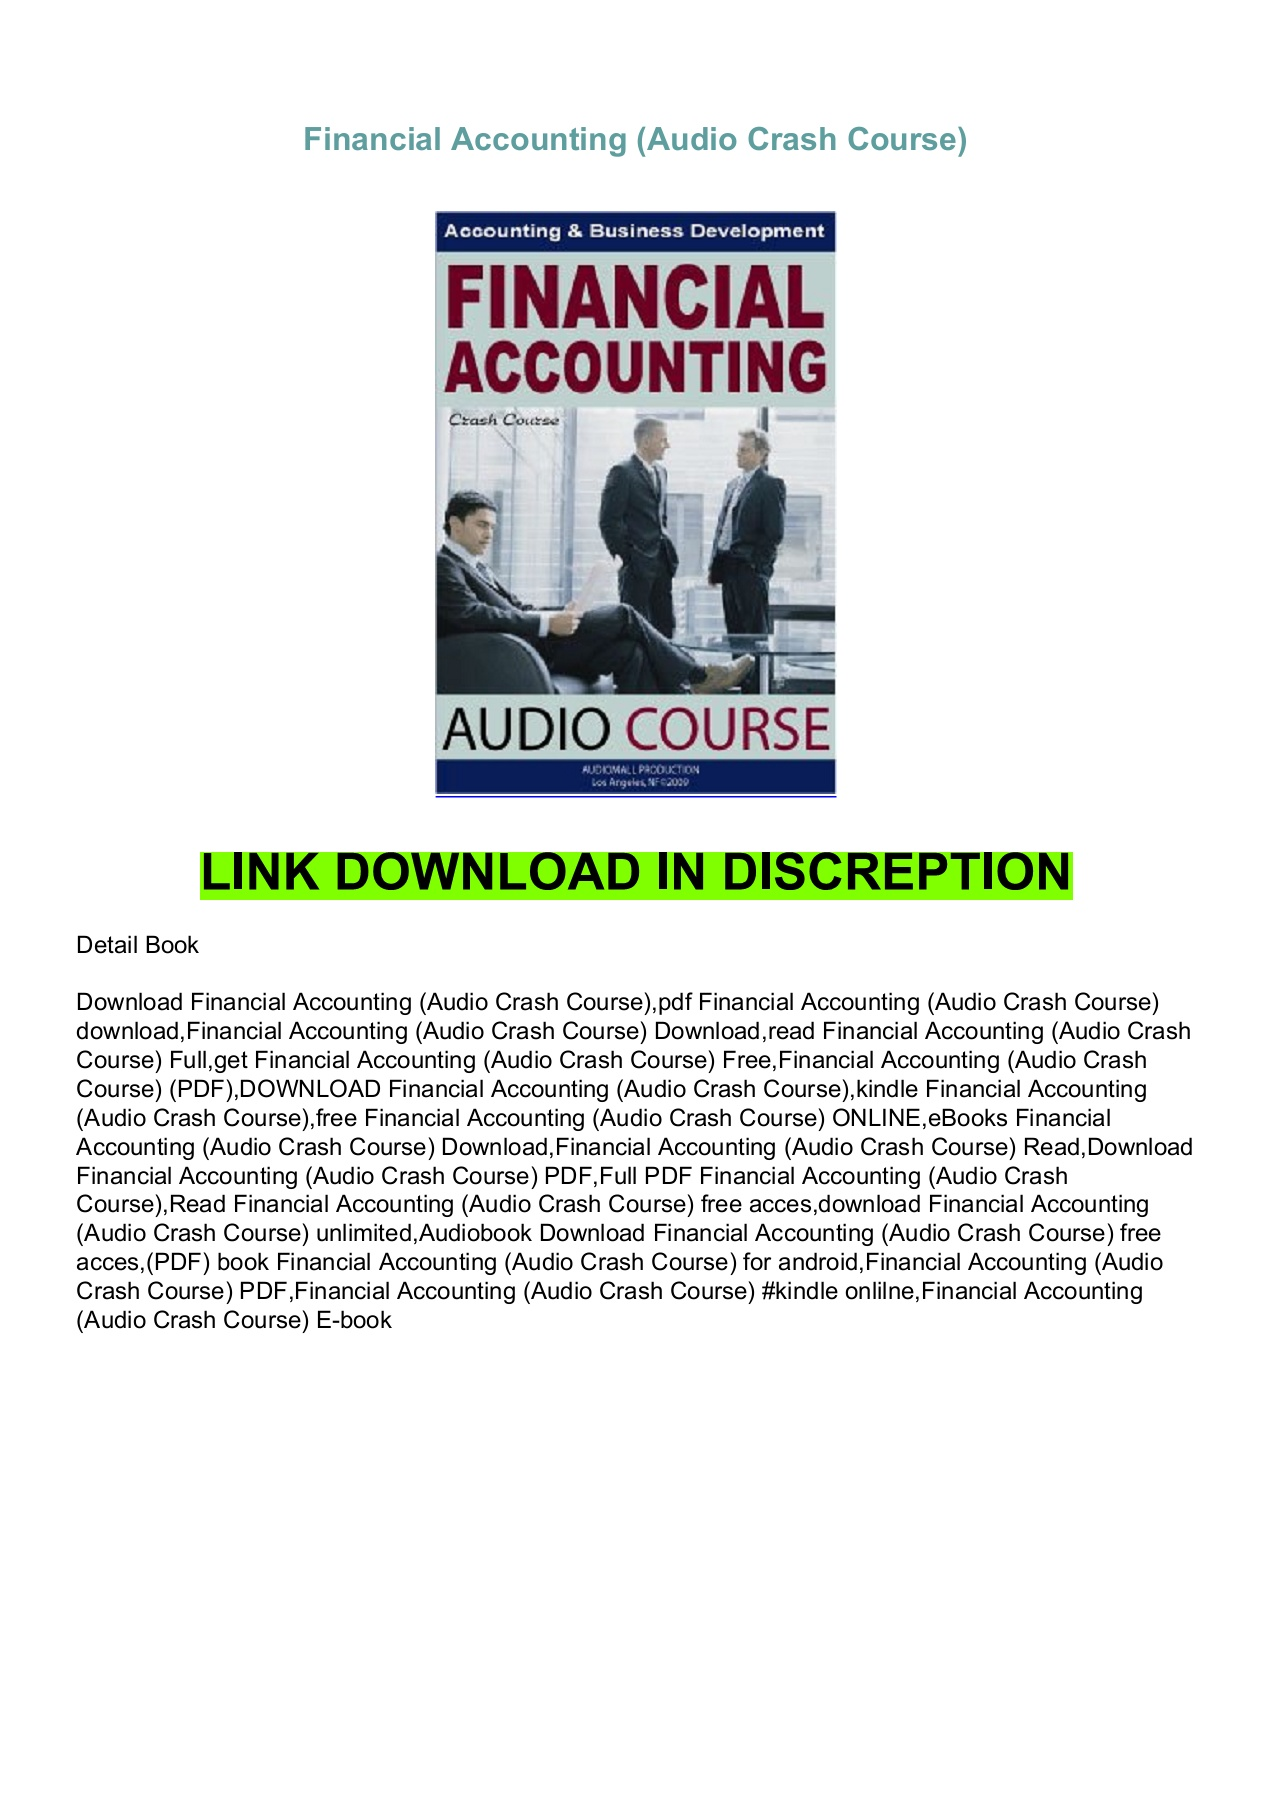 pdf (read online) Financial Accounting (Audio Crash Course) Pages 1 - 1 -  Text Version | AnyFlip